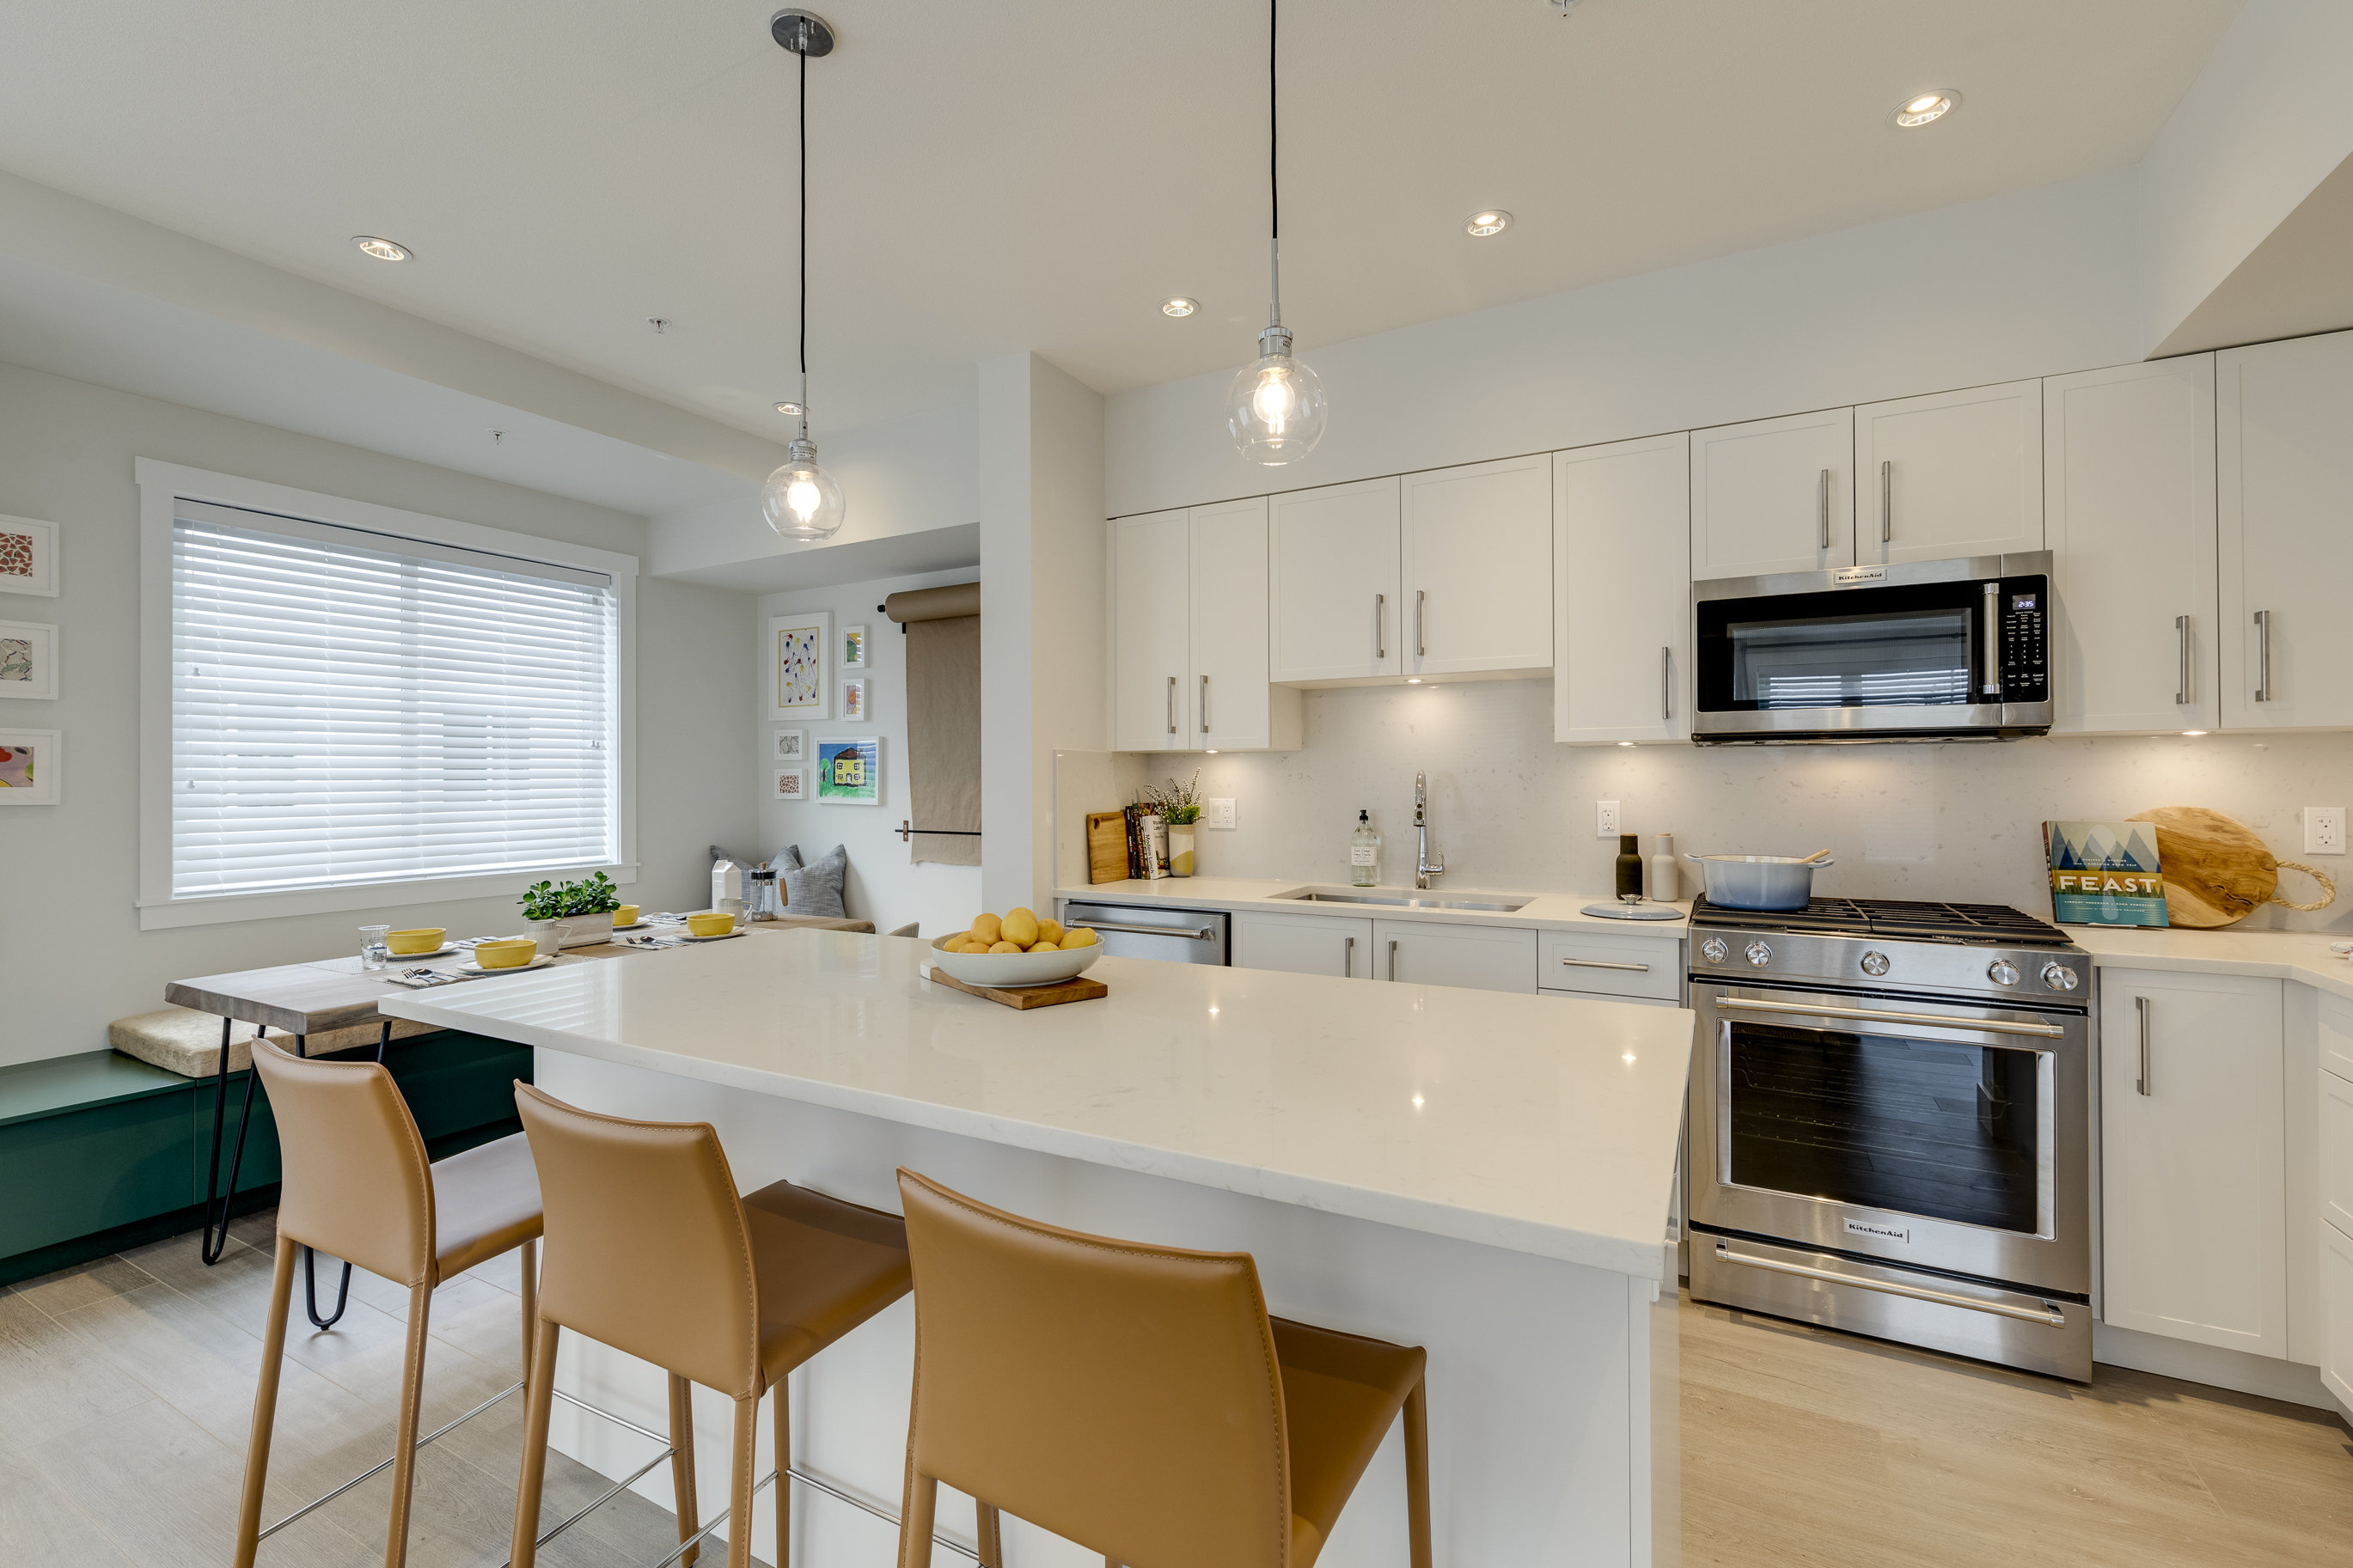 Kitchen - 22127 48a Ave Langley Twp, BC V3A 3Z7 Canada!